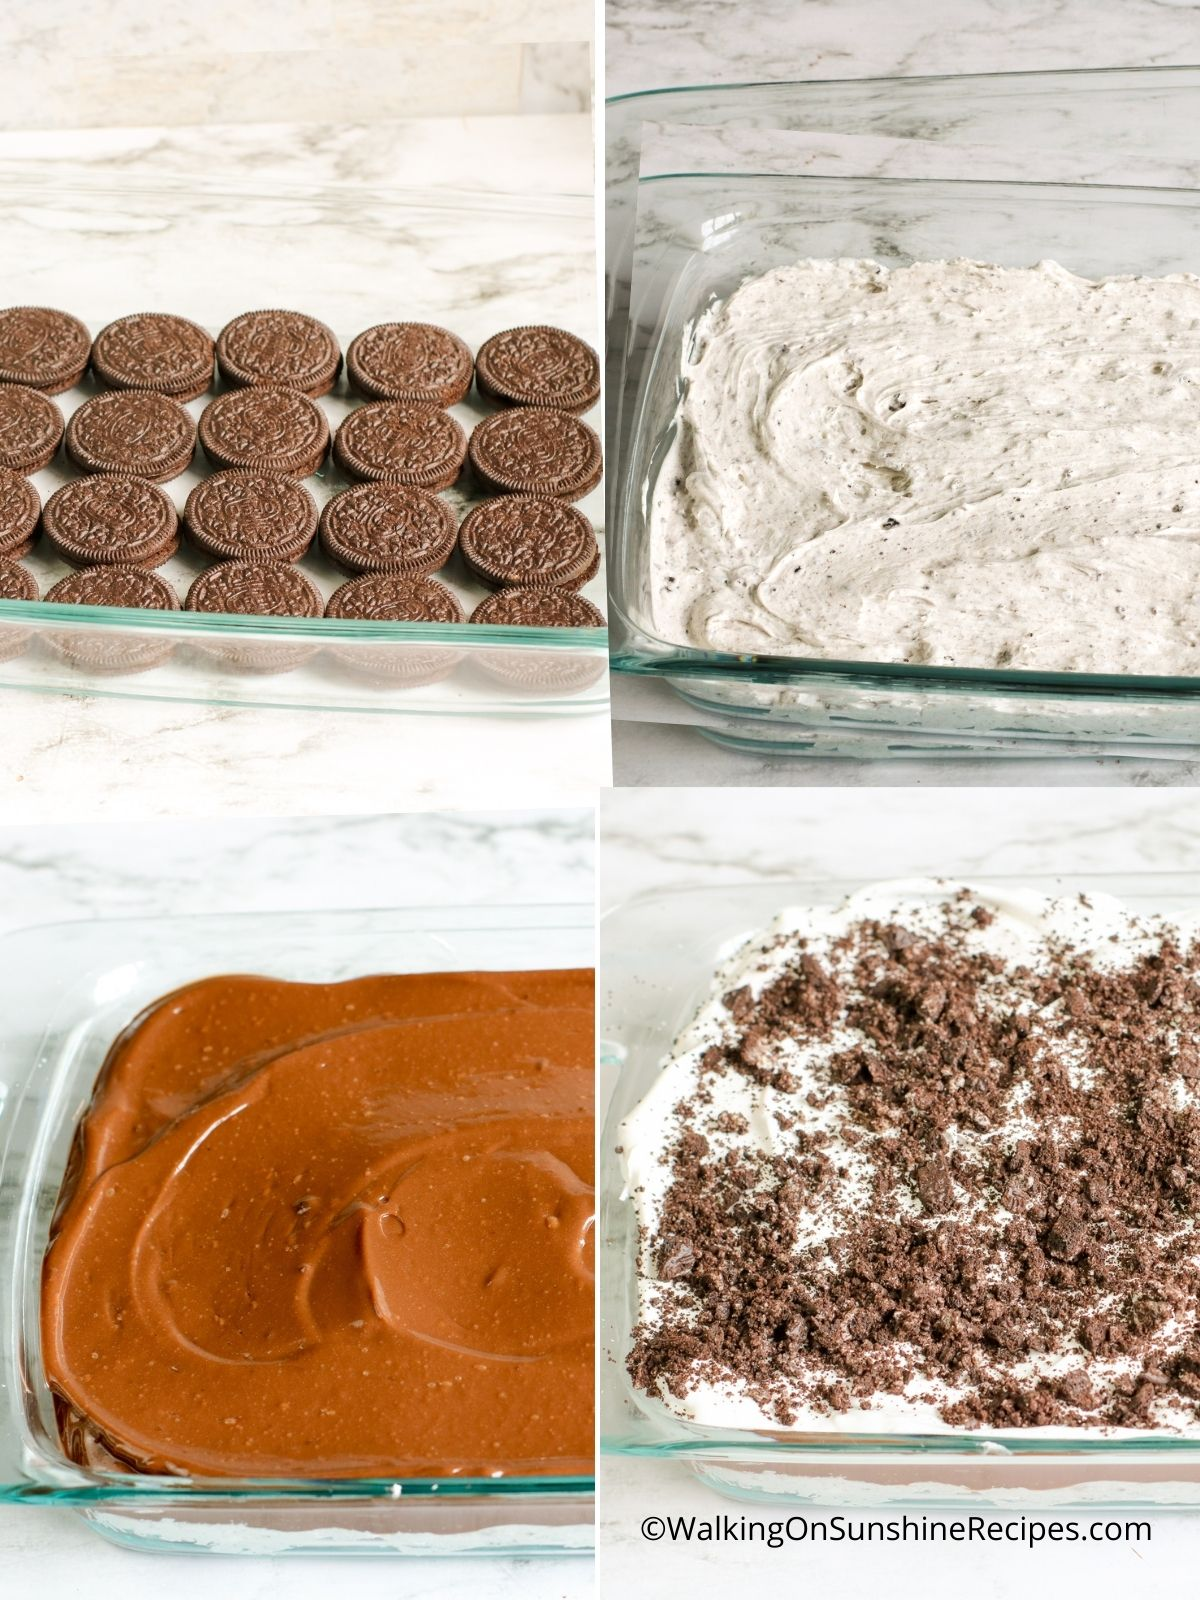 Process photos for Oreo Pudding Dessert in baking dish.